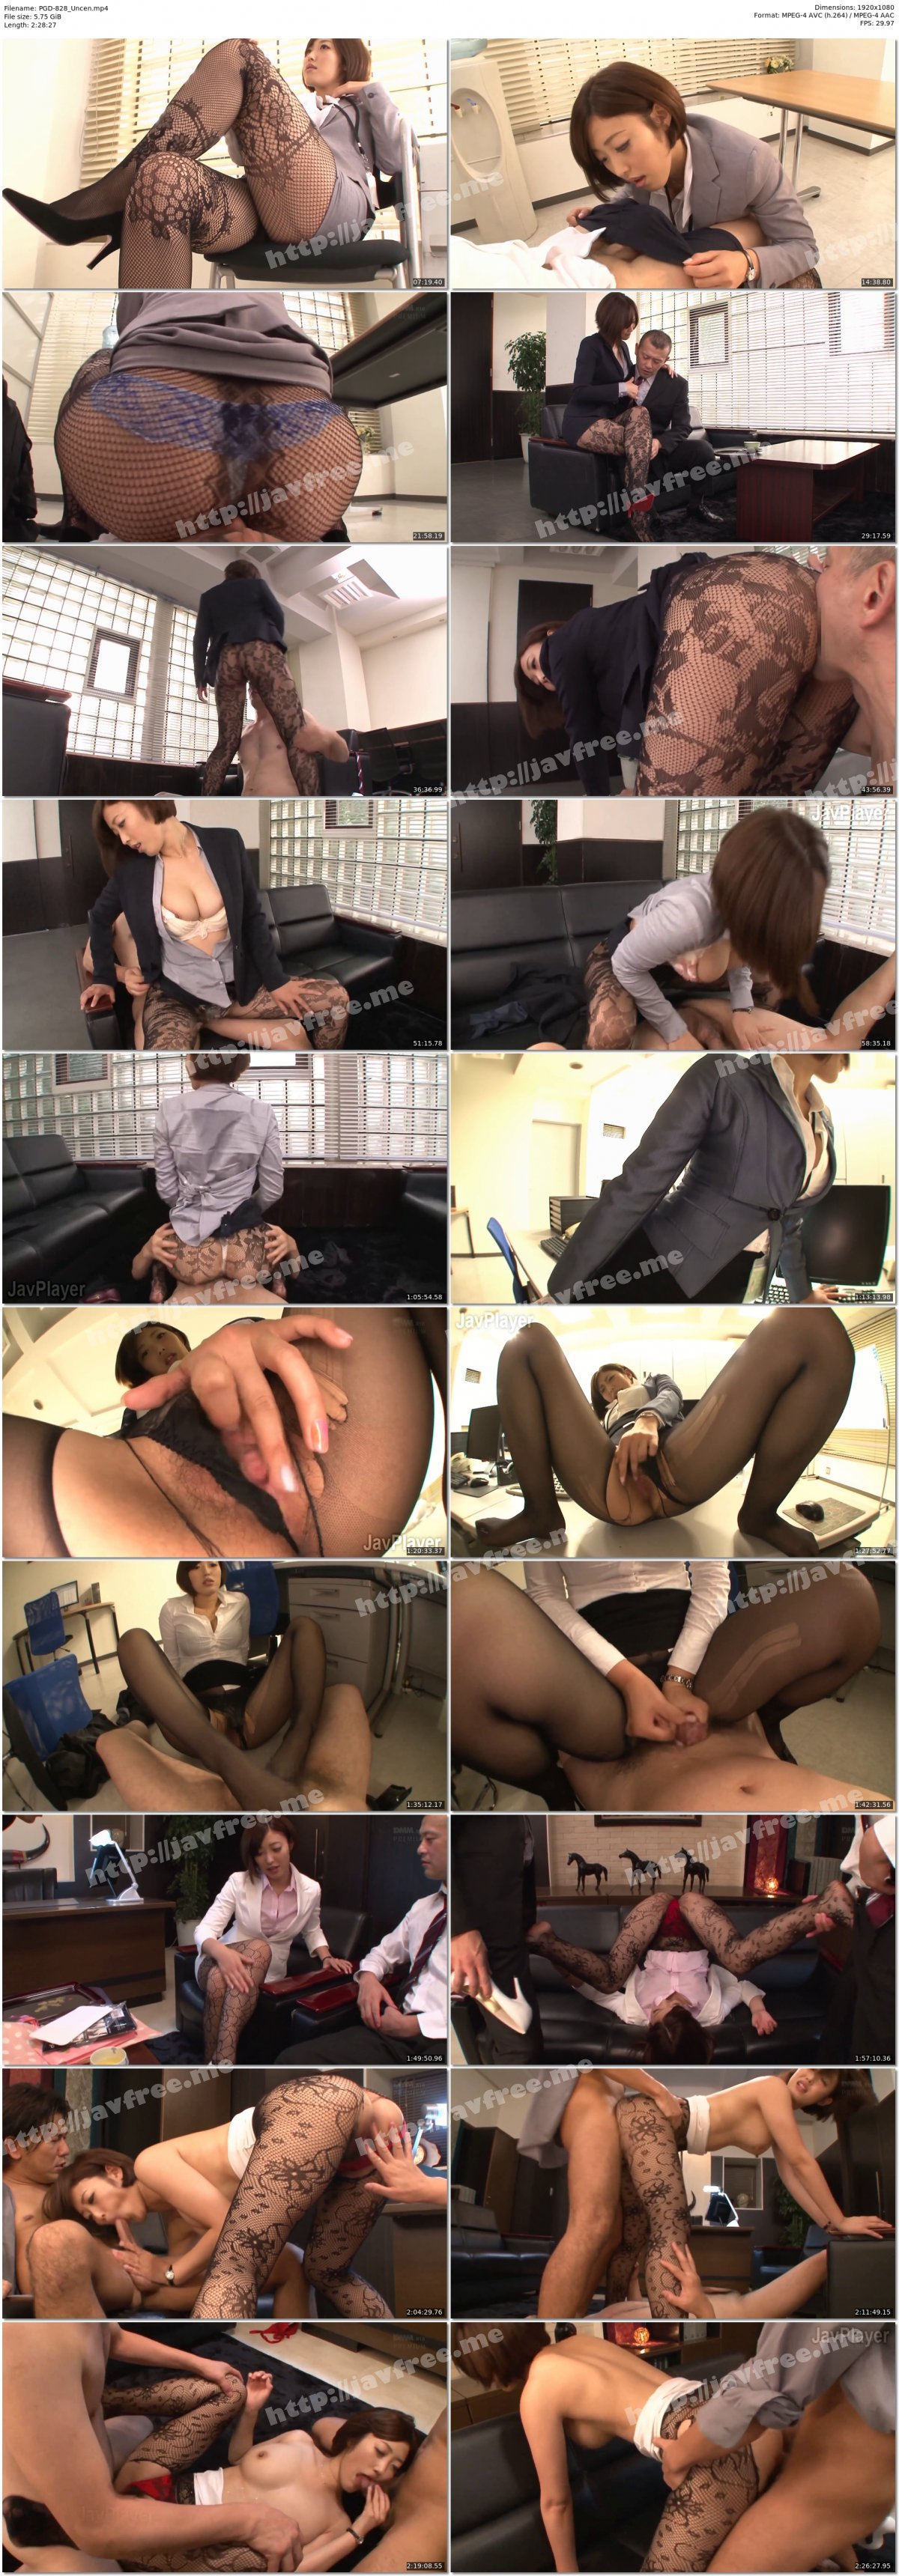 [PGD-828] 誘惑パンスト痴女OL 水野朝陽 Uncensored - image PGD-828_Uncen on https://javfree.me